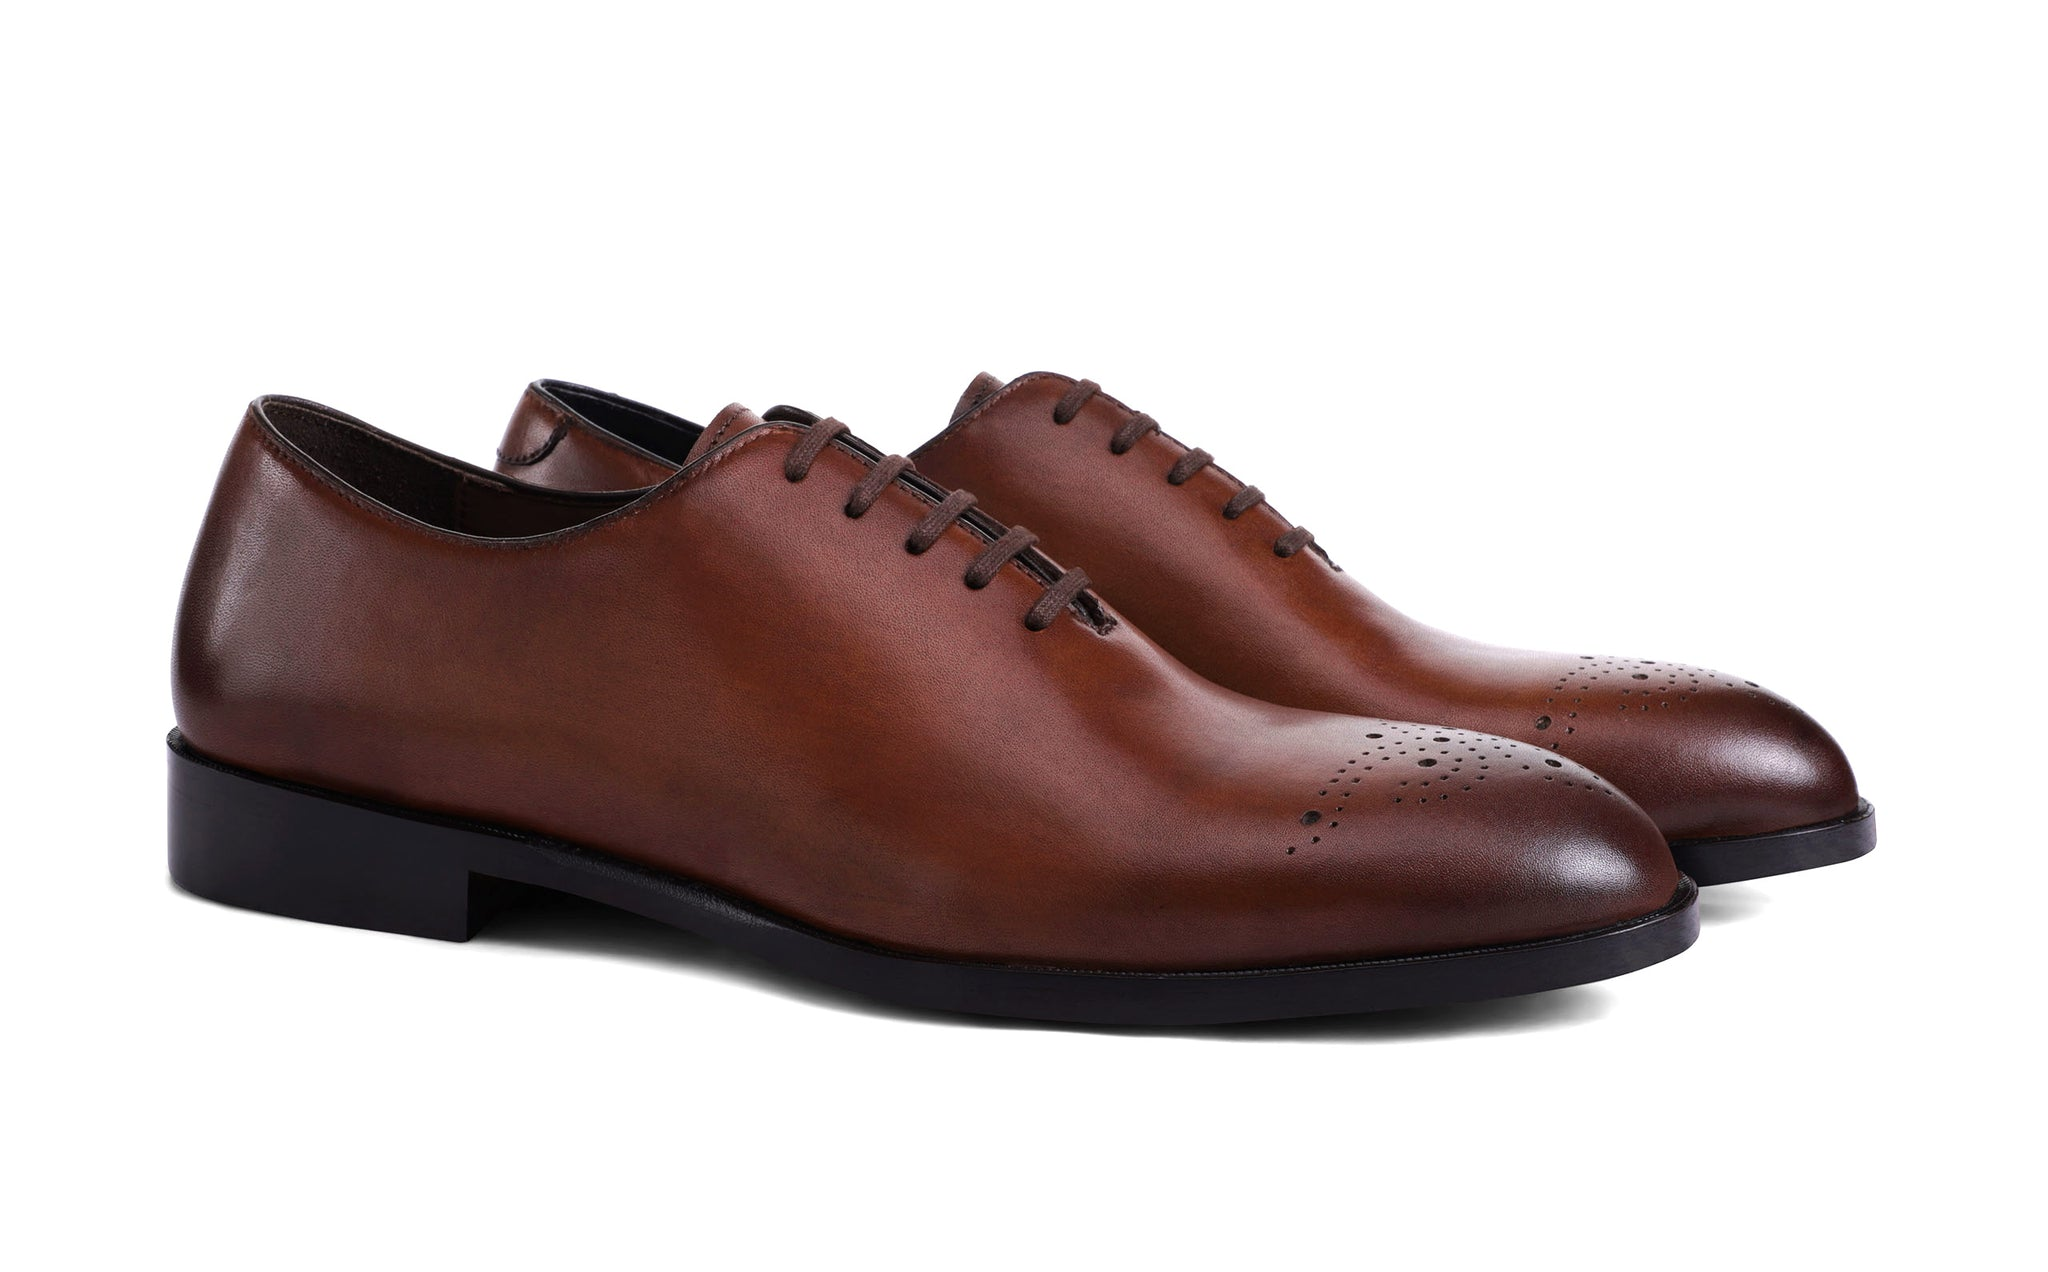 dark-tan-Italian-leather-shoes